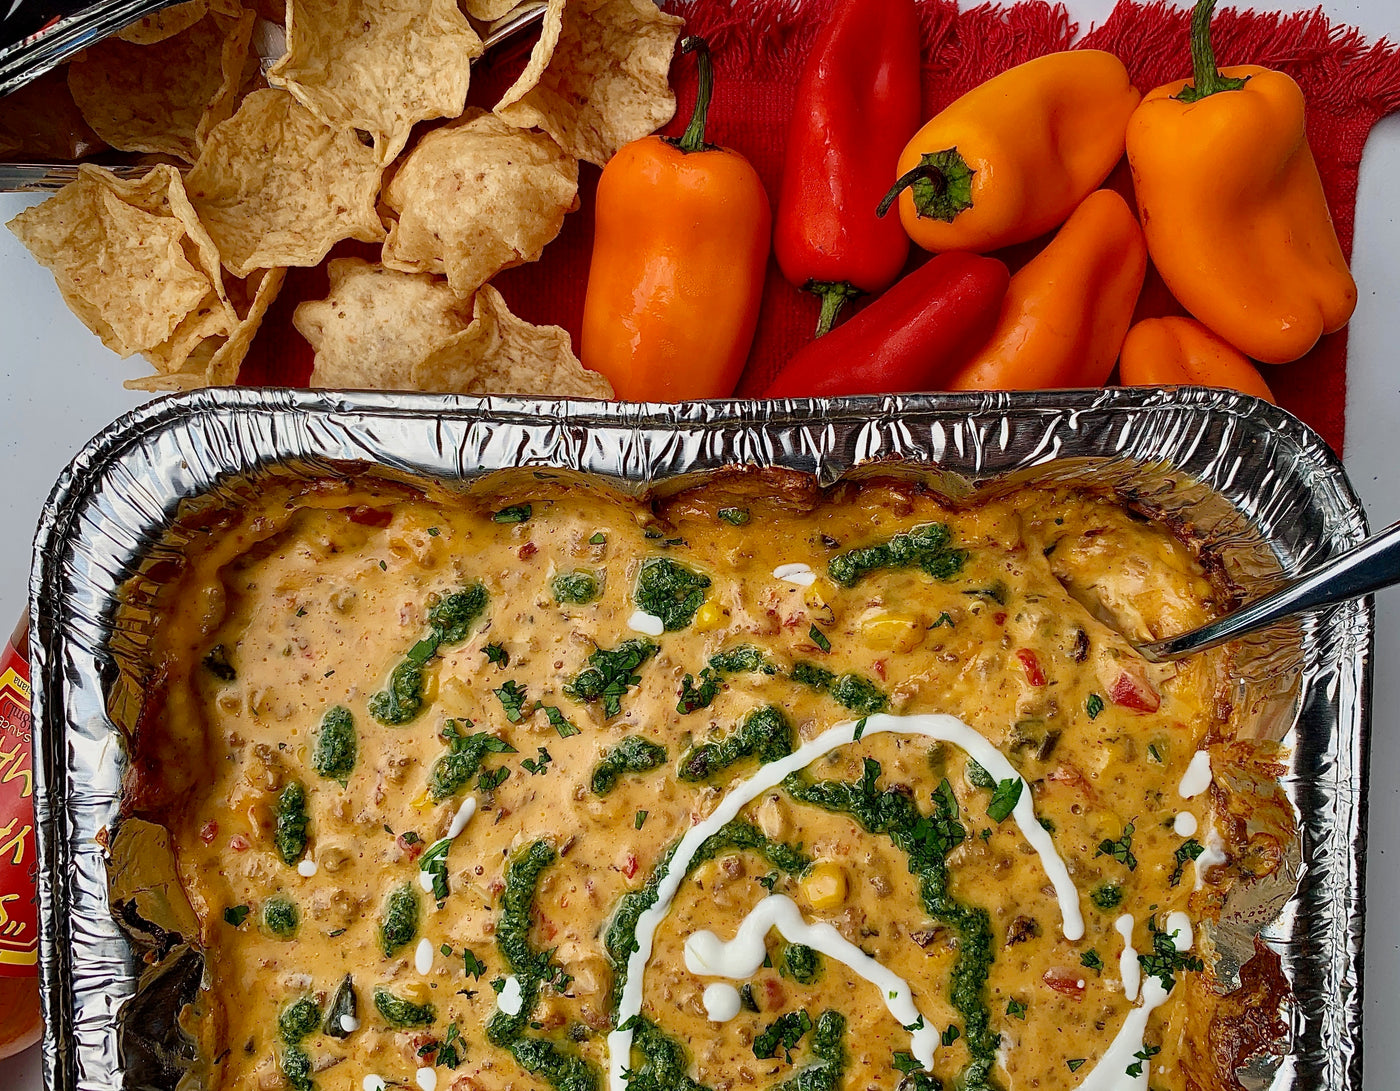 Pan of Roasted Queso Dip with Peppers and Nachos